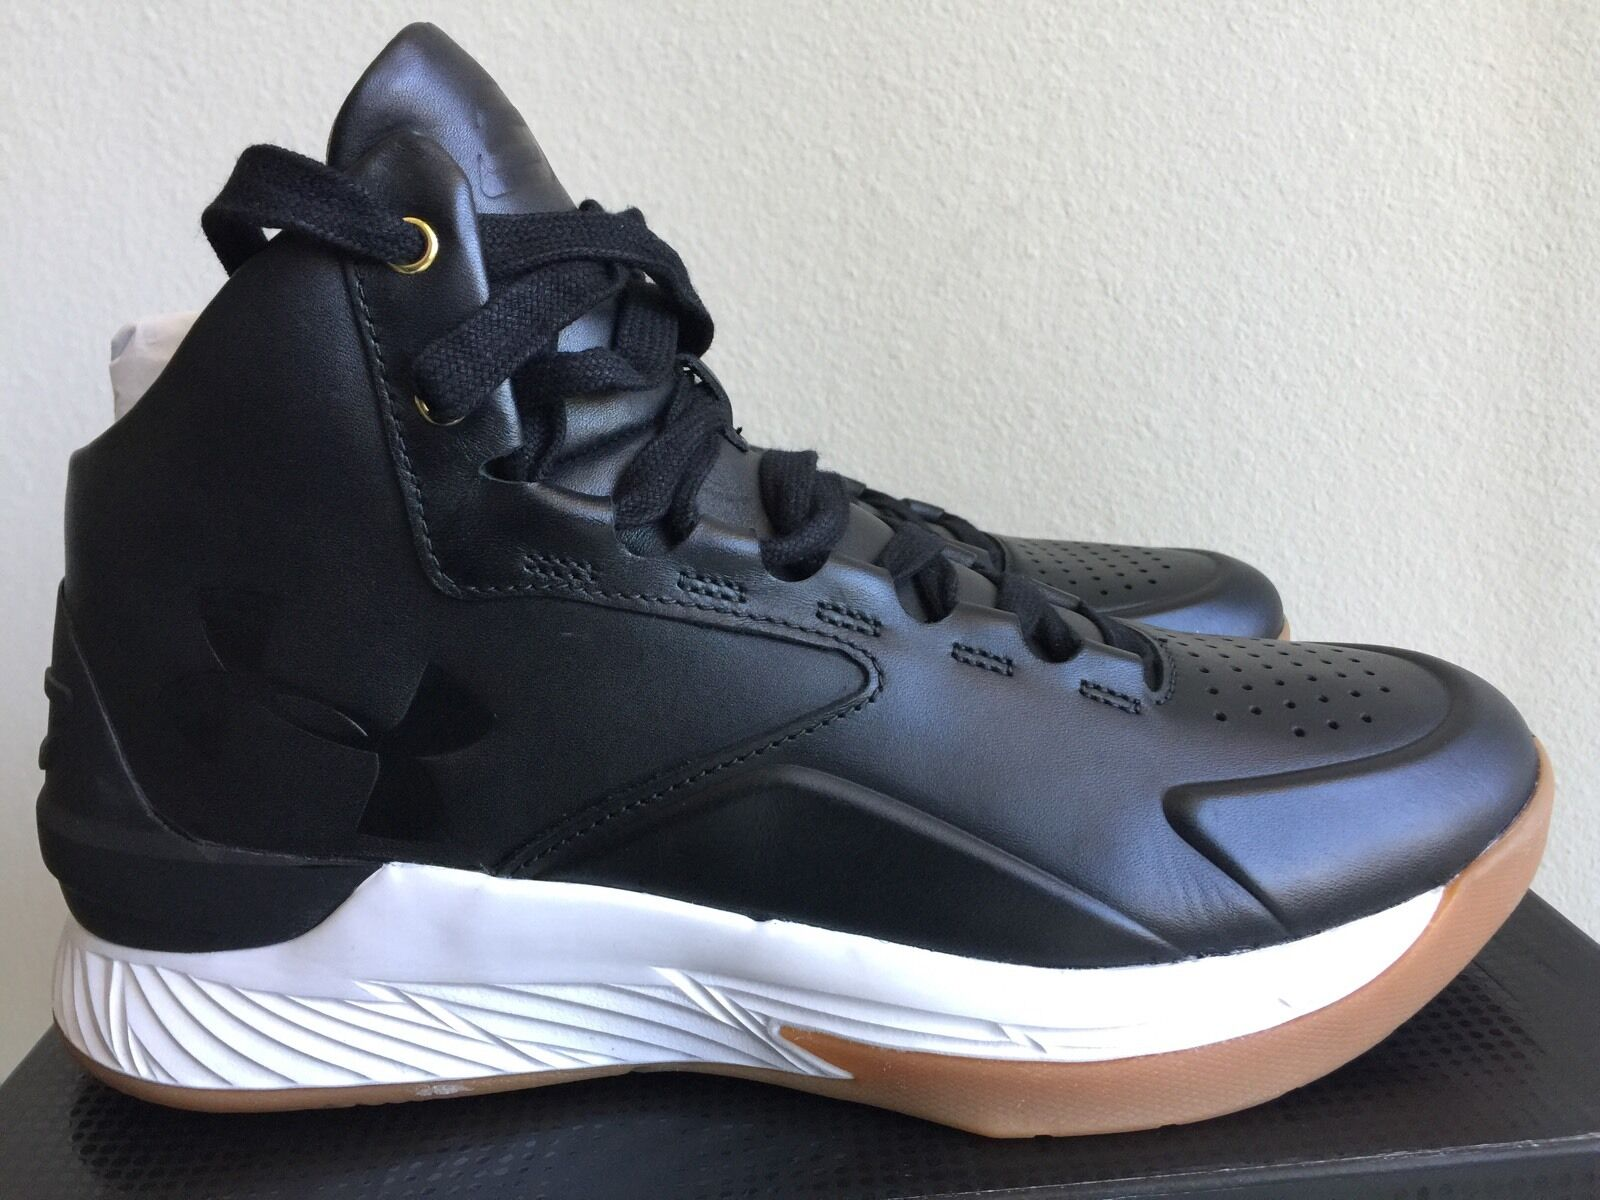 CURRY 1 LUX MID LEATHER BLACK GUM 1298700-001 Size 9